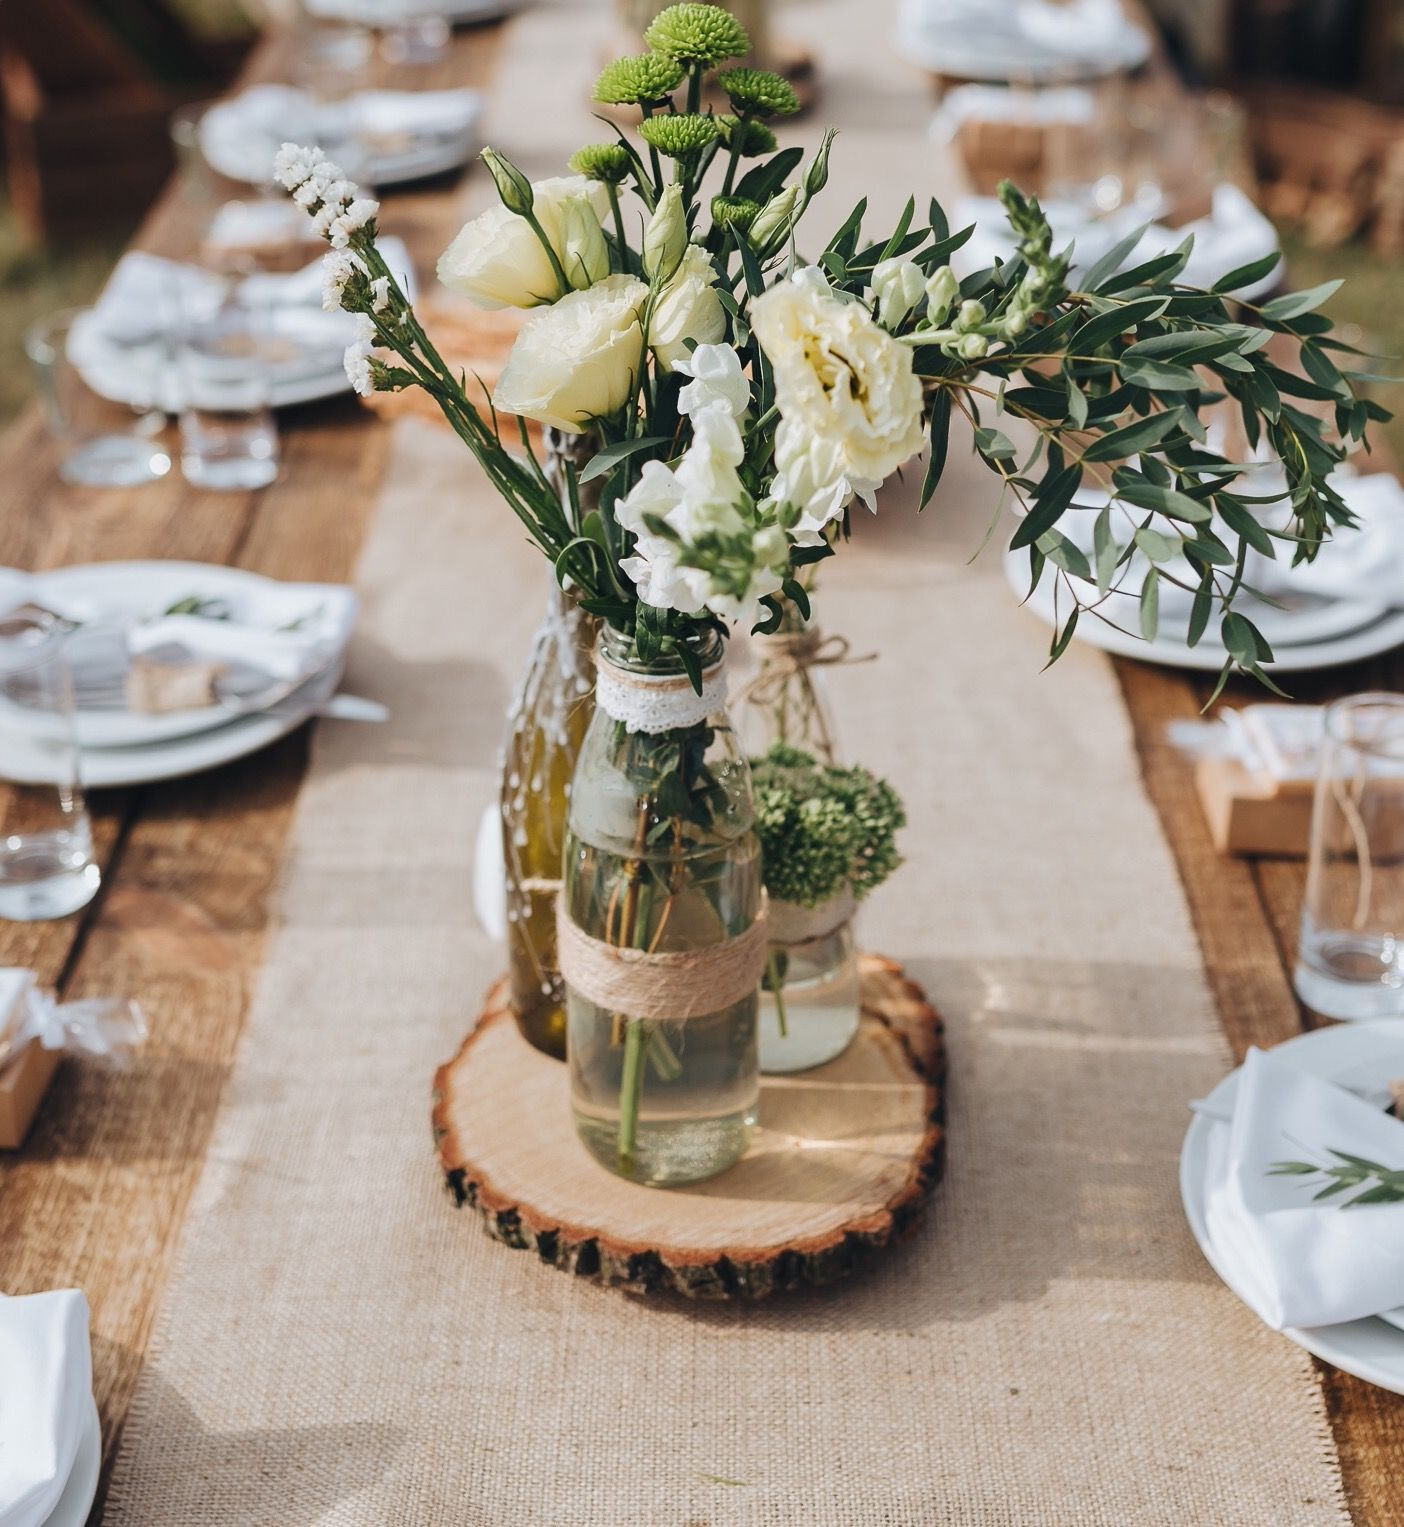 Wedding Centerpieces And Wood Slices The Perfect Match Wedding Table Centerpieces Rustic Wood Centerpieces Wedding Rustic Wedding Centerpieces